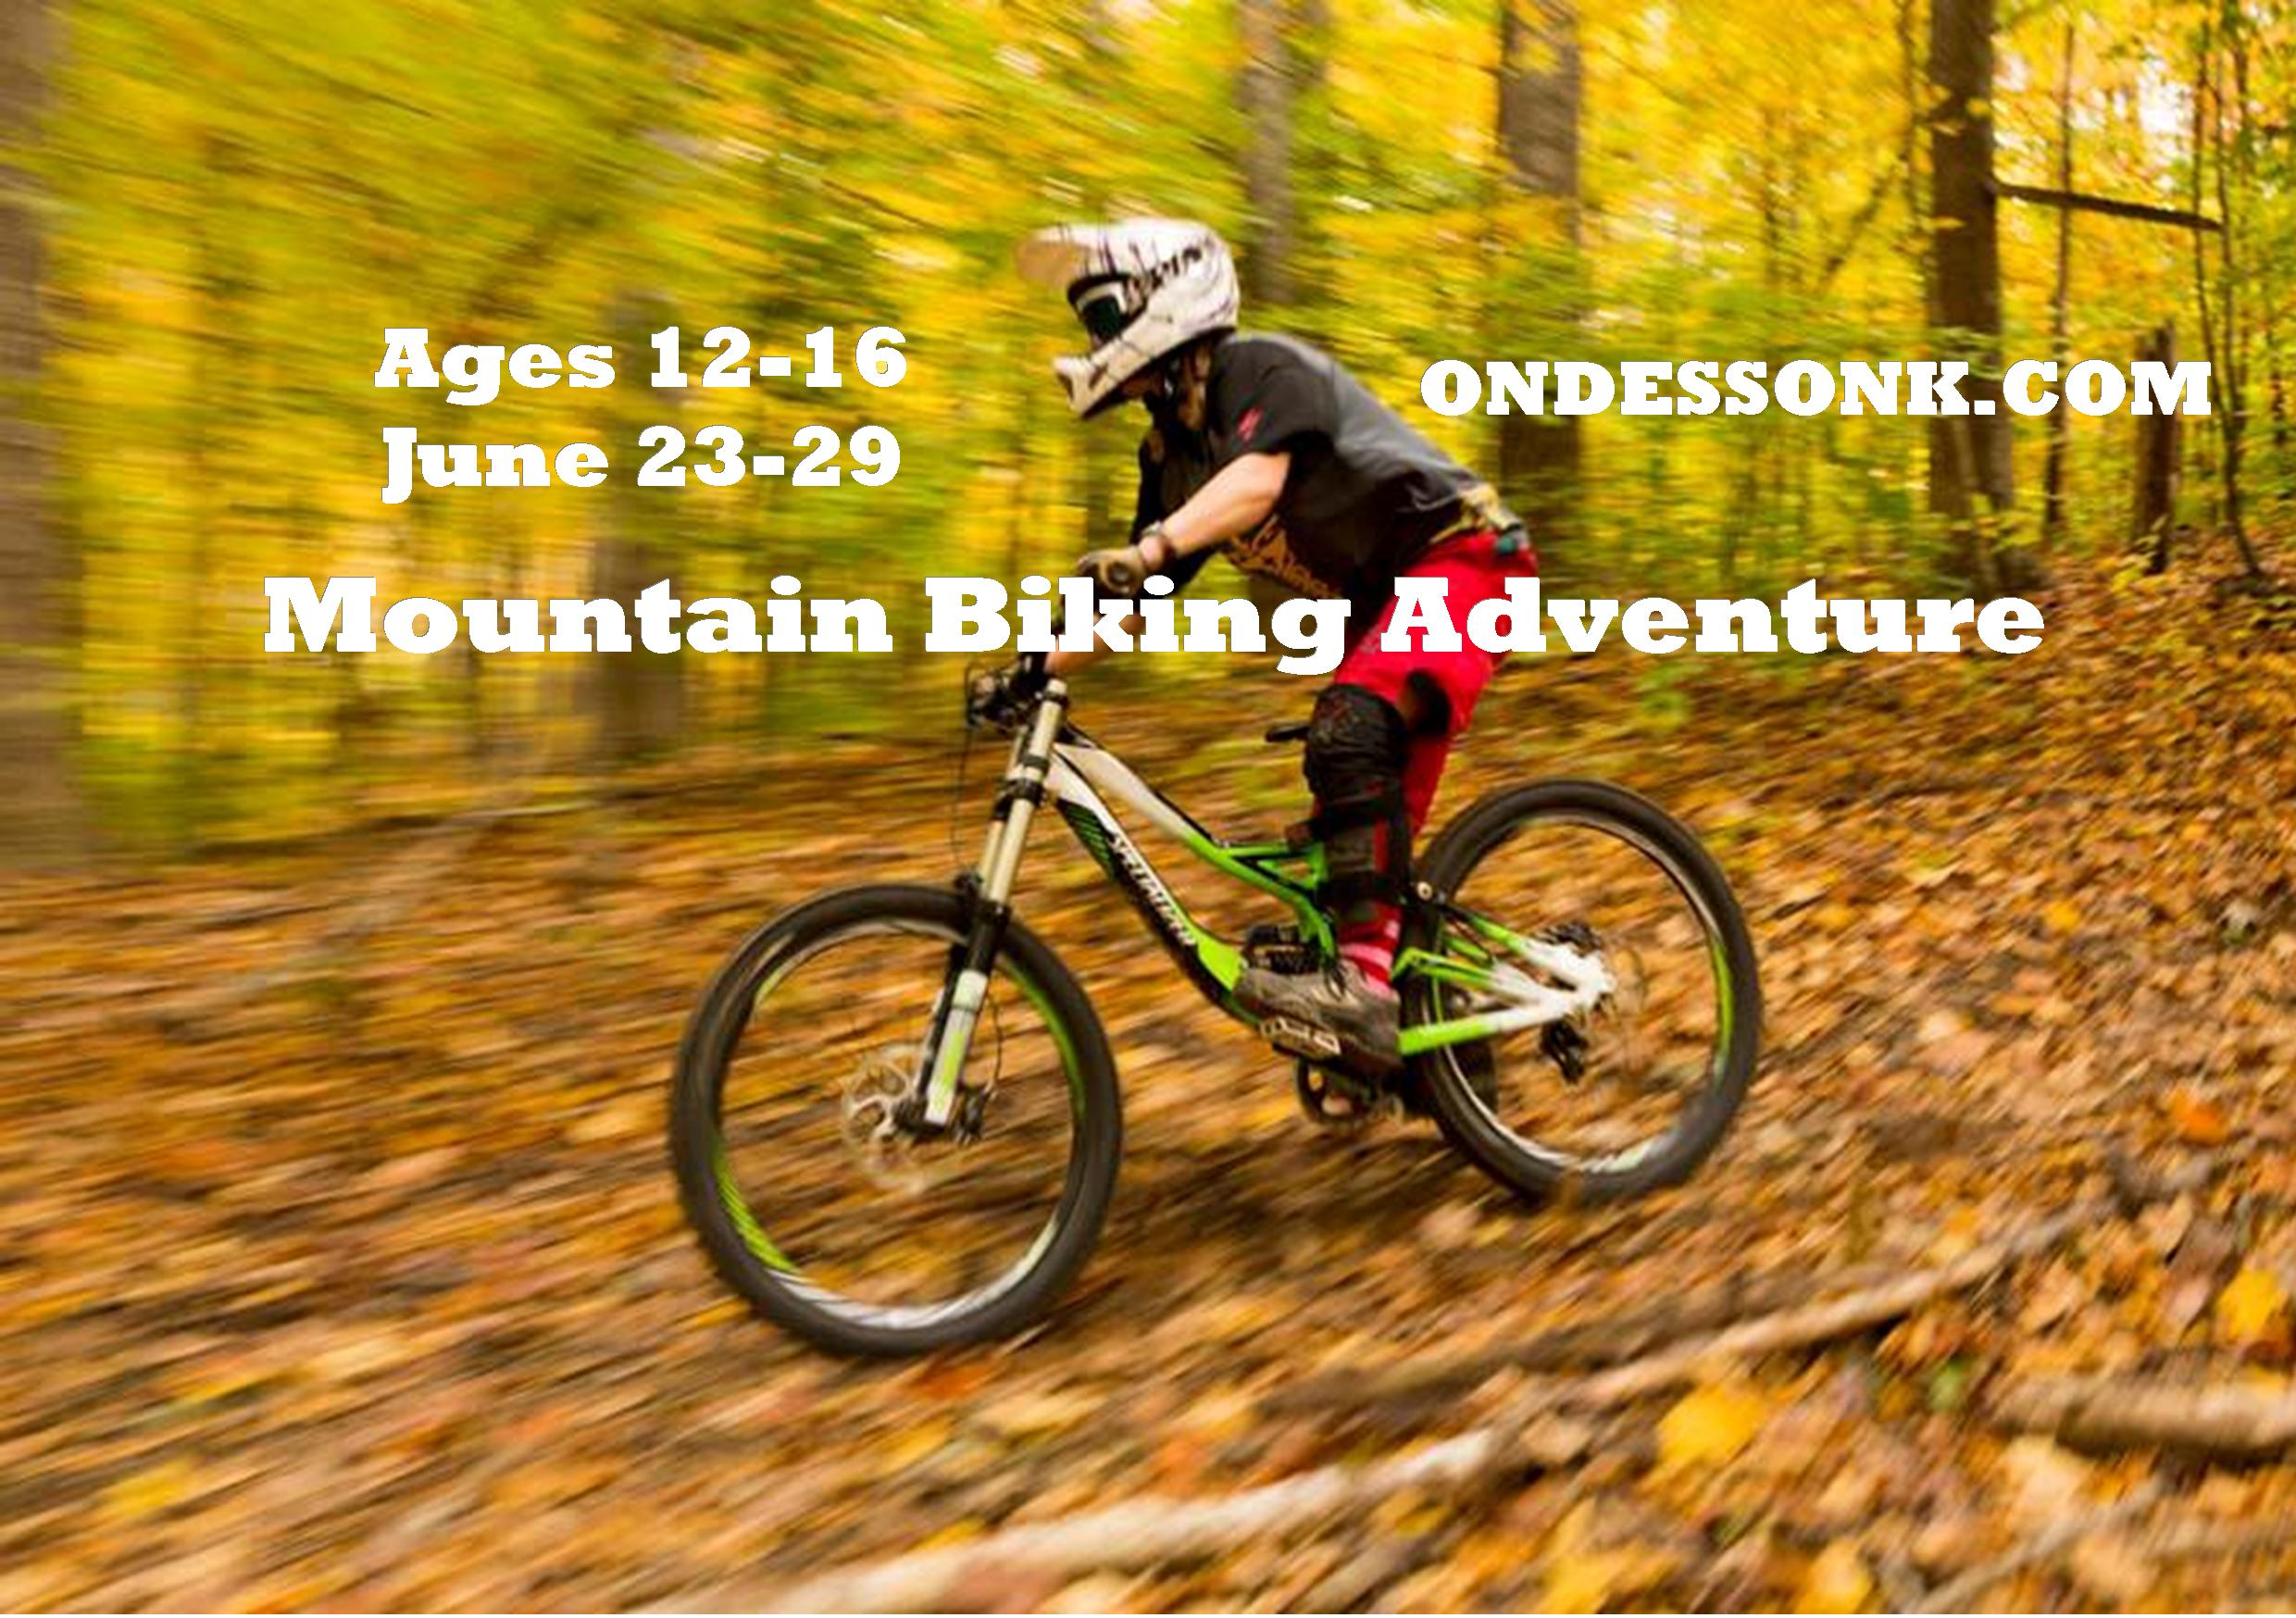 Mountain Biking Adventure Camp Ondessonk